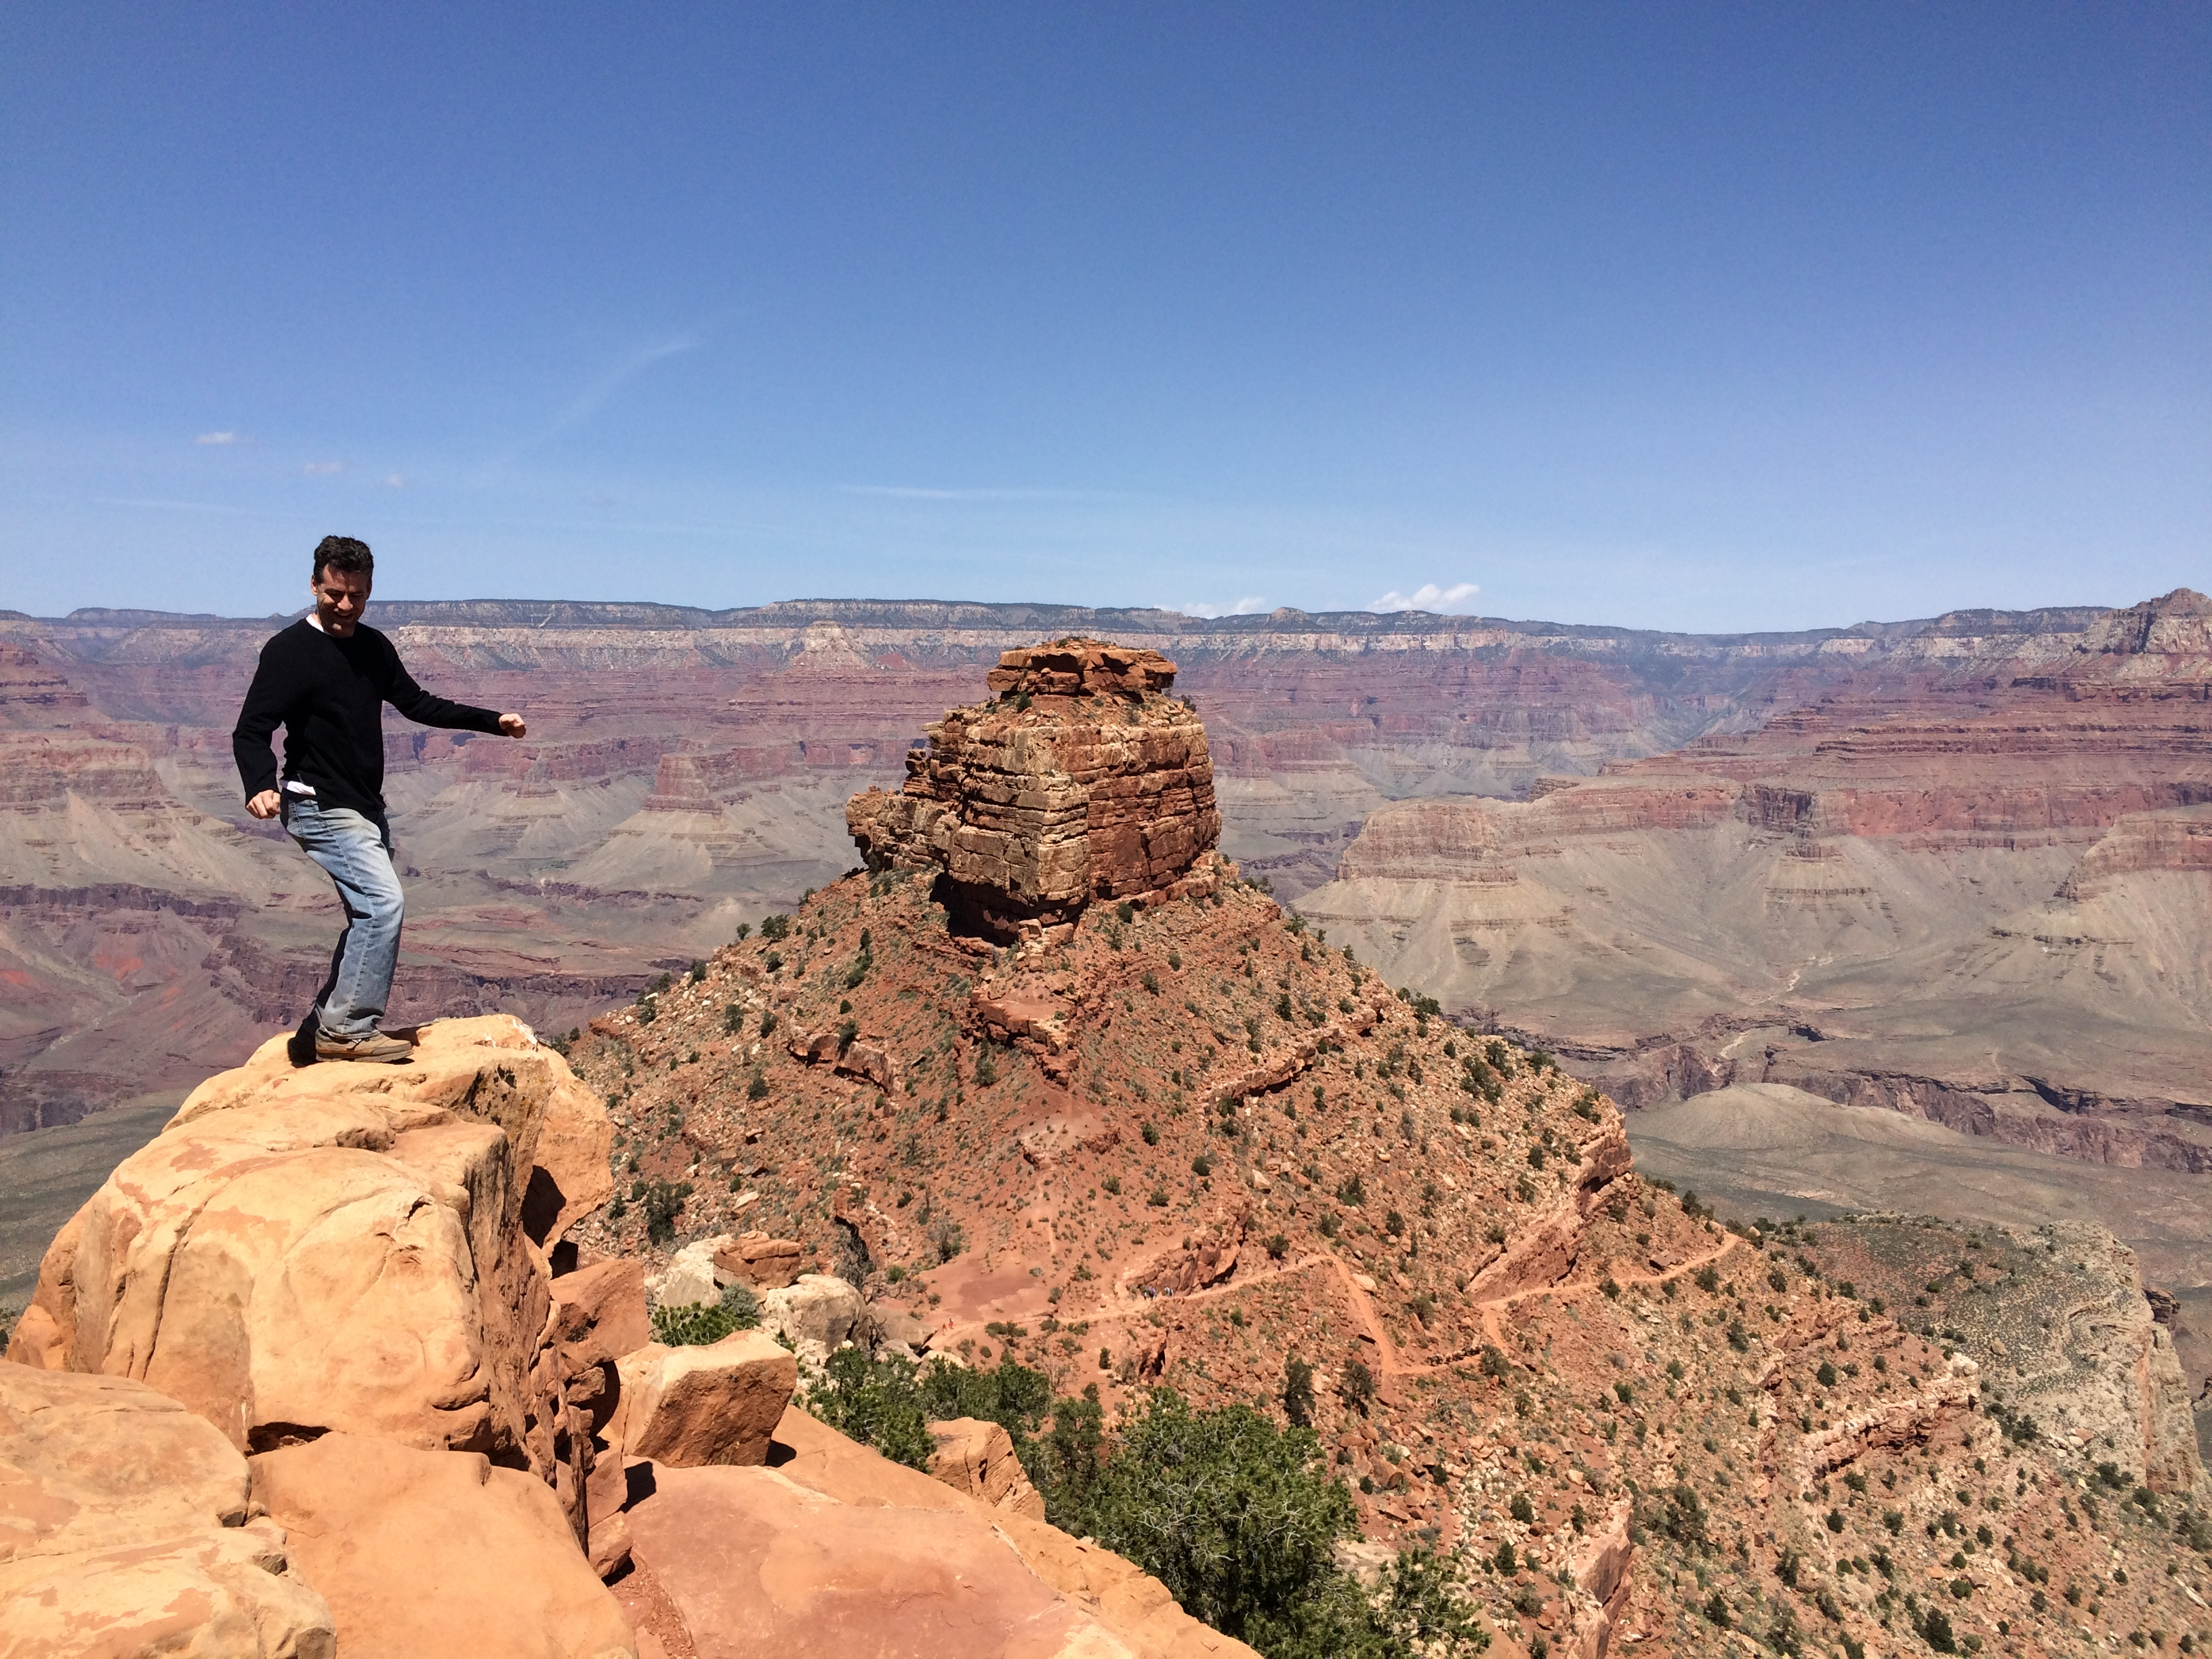 Just off the South Kaibab Trail in the Grand Canyon.